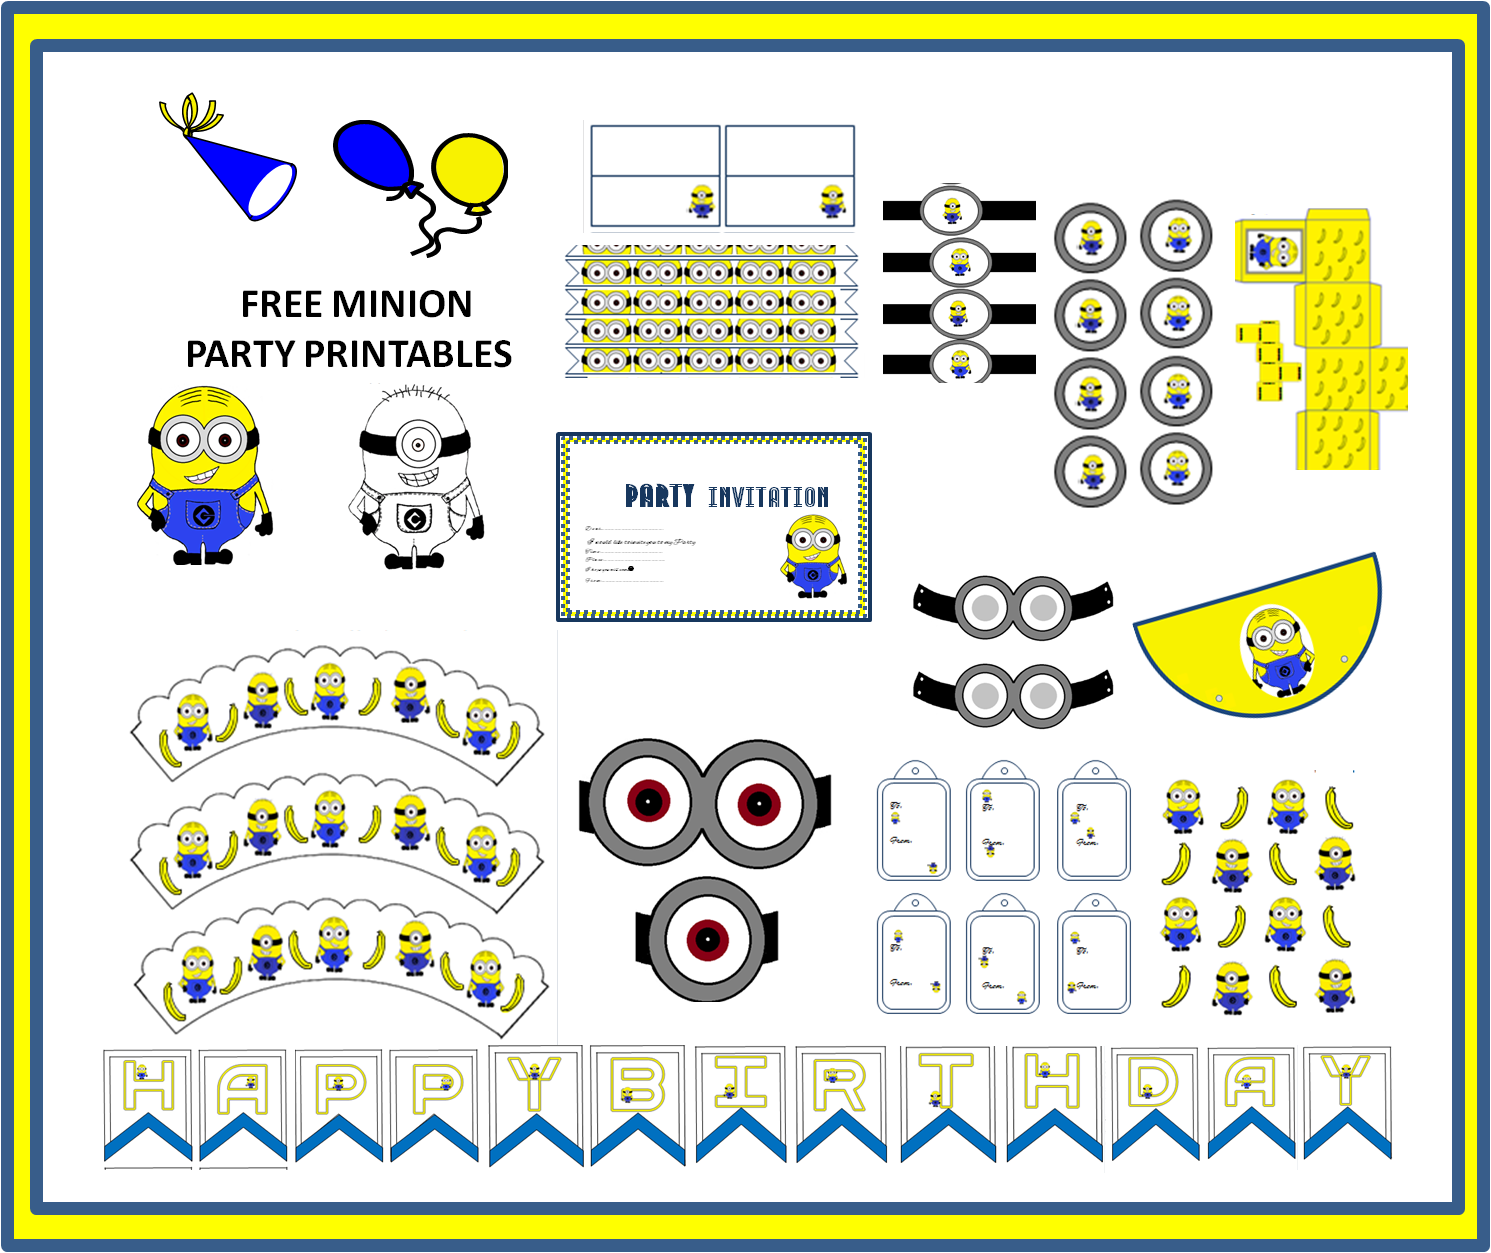 the art bug: Free Minion Themed Party Printables